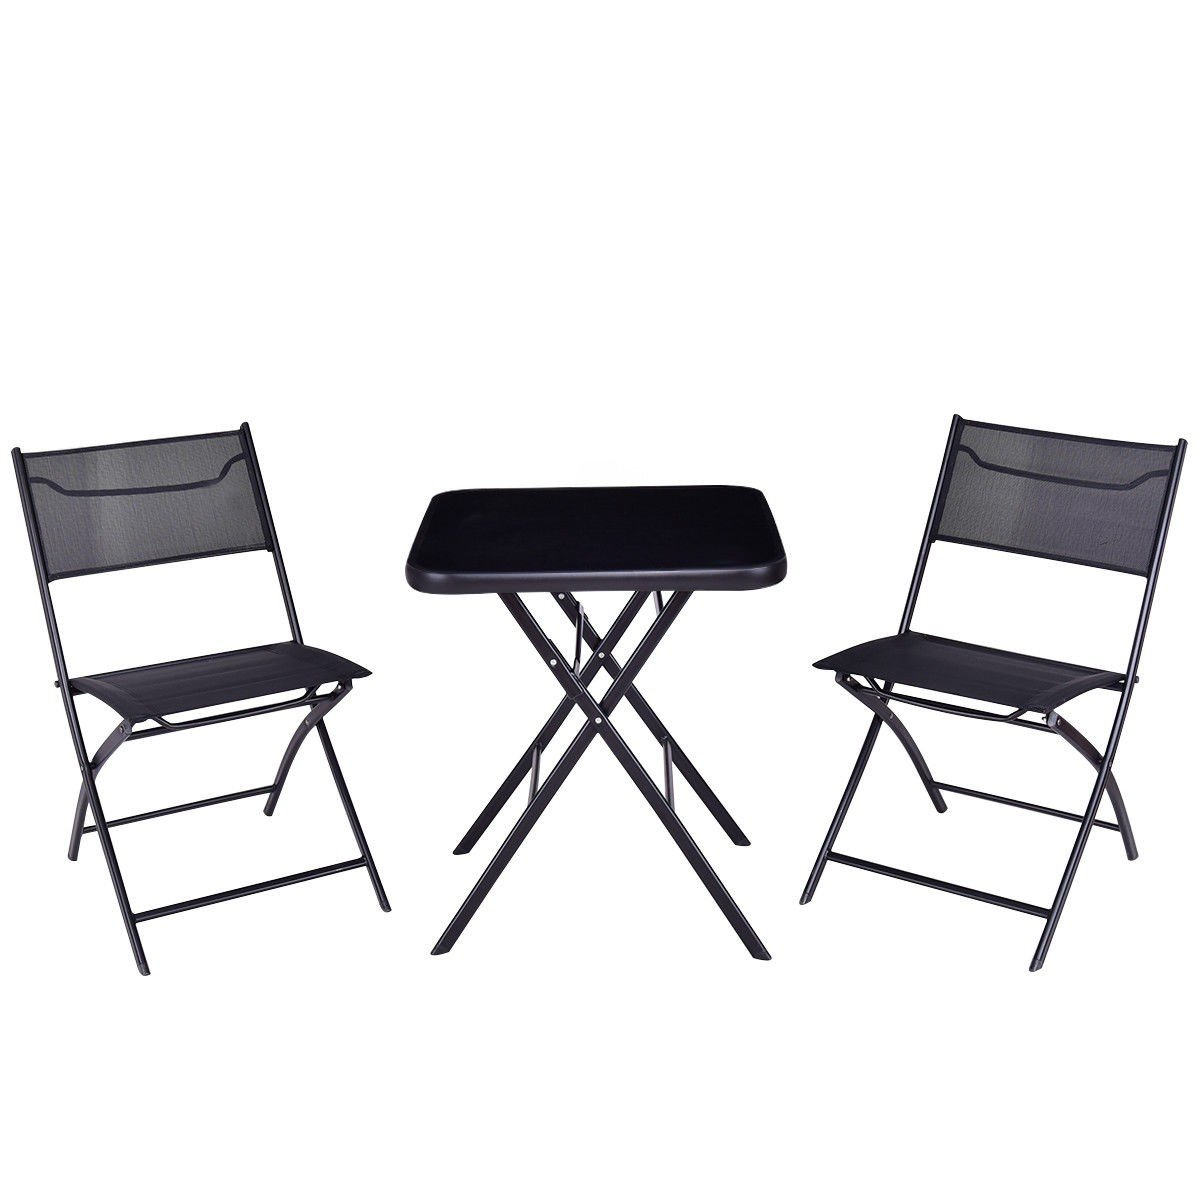 All4you Patio Bistro Table Set With Chairs Folding Outdoor Seater Coffee Table Set Black Backyard Balcony Furniture by All4you (Image #2)